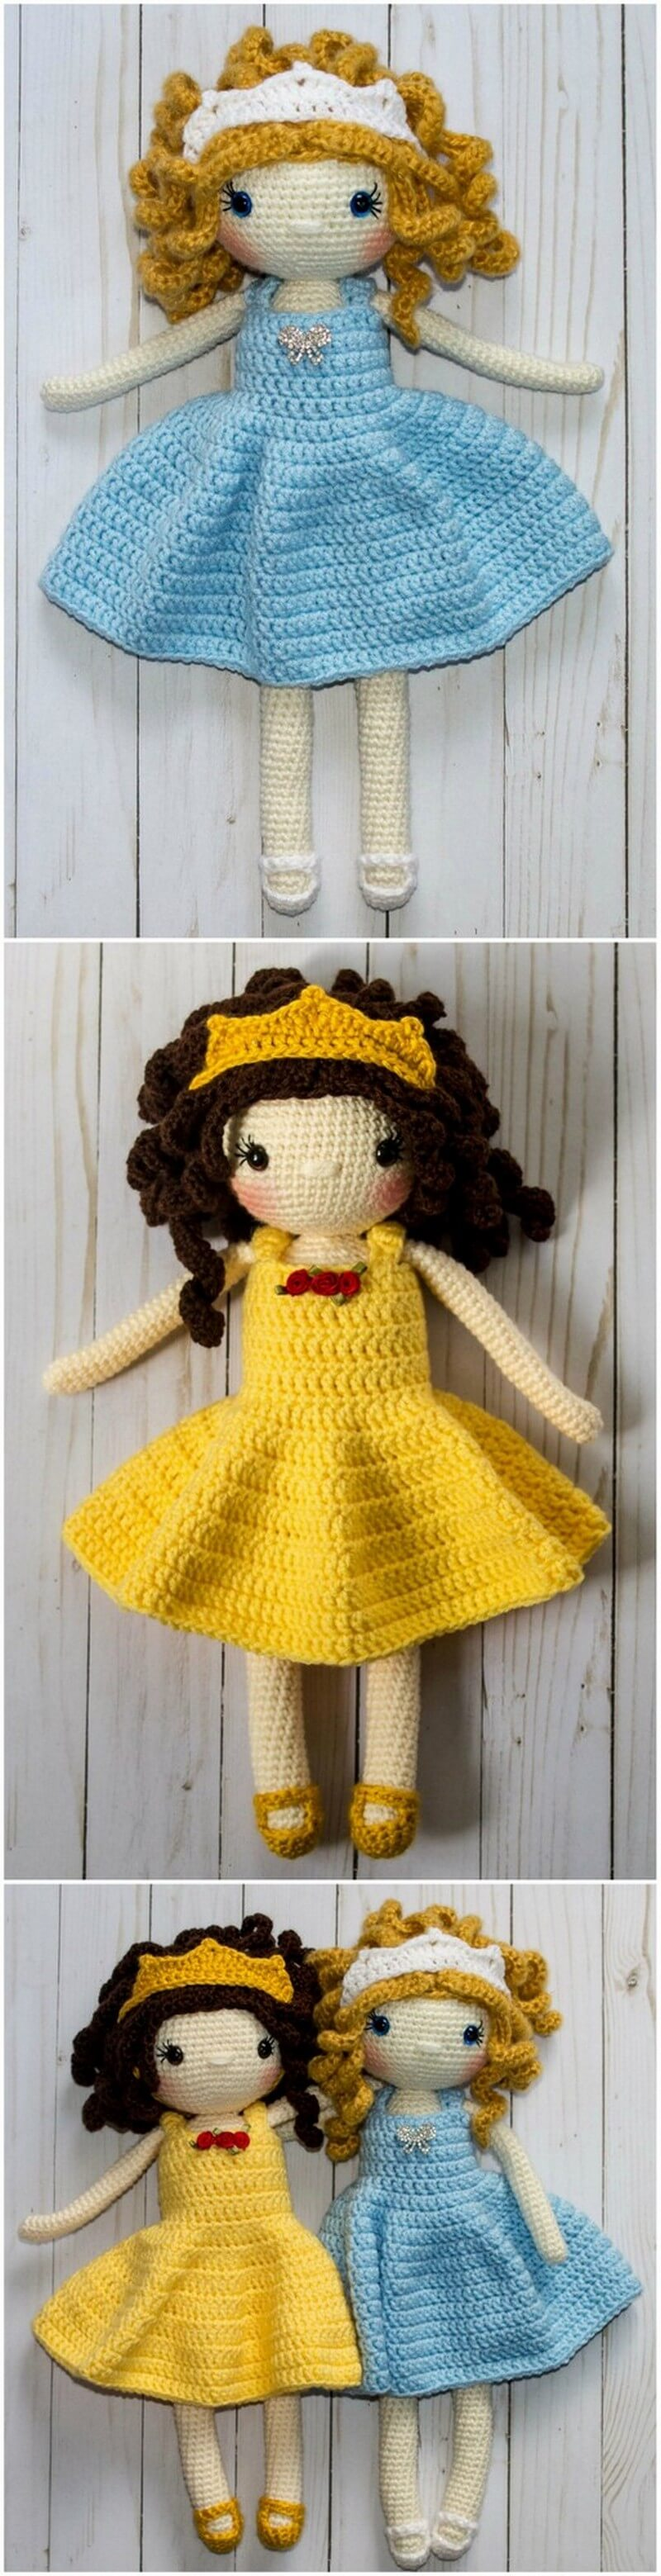 Crochet Amigurumi Doll Pattern (48)